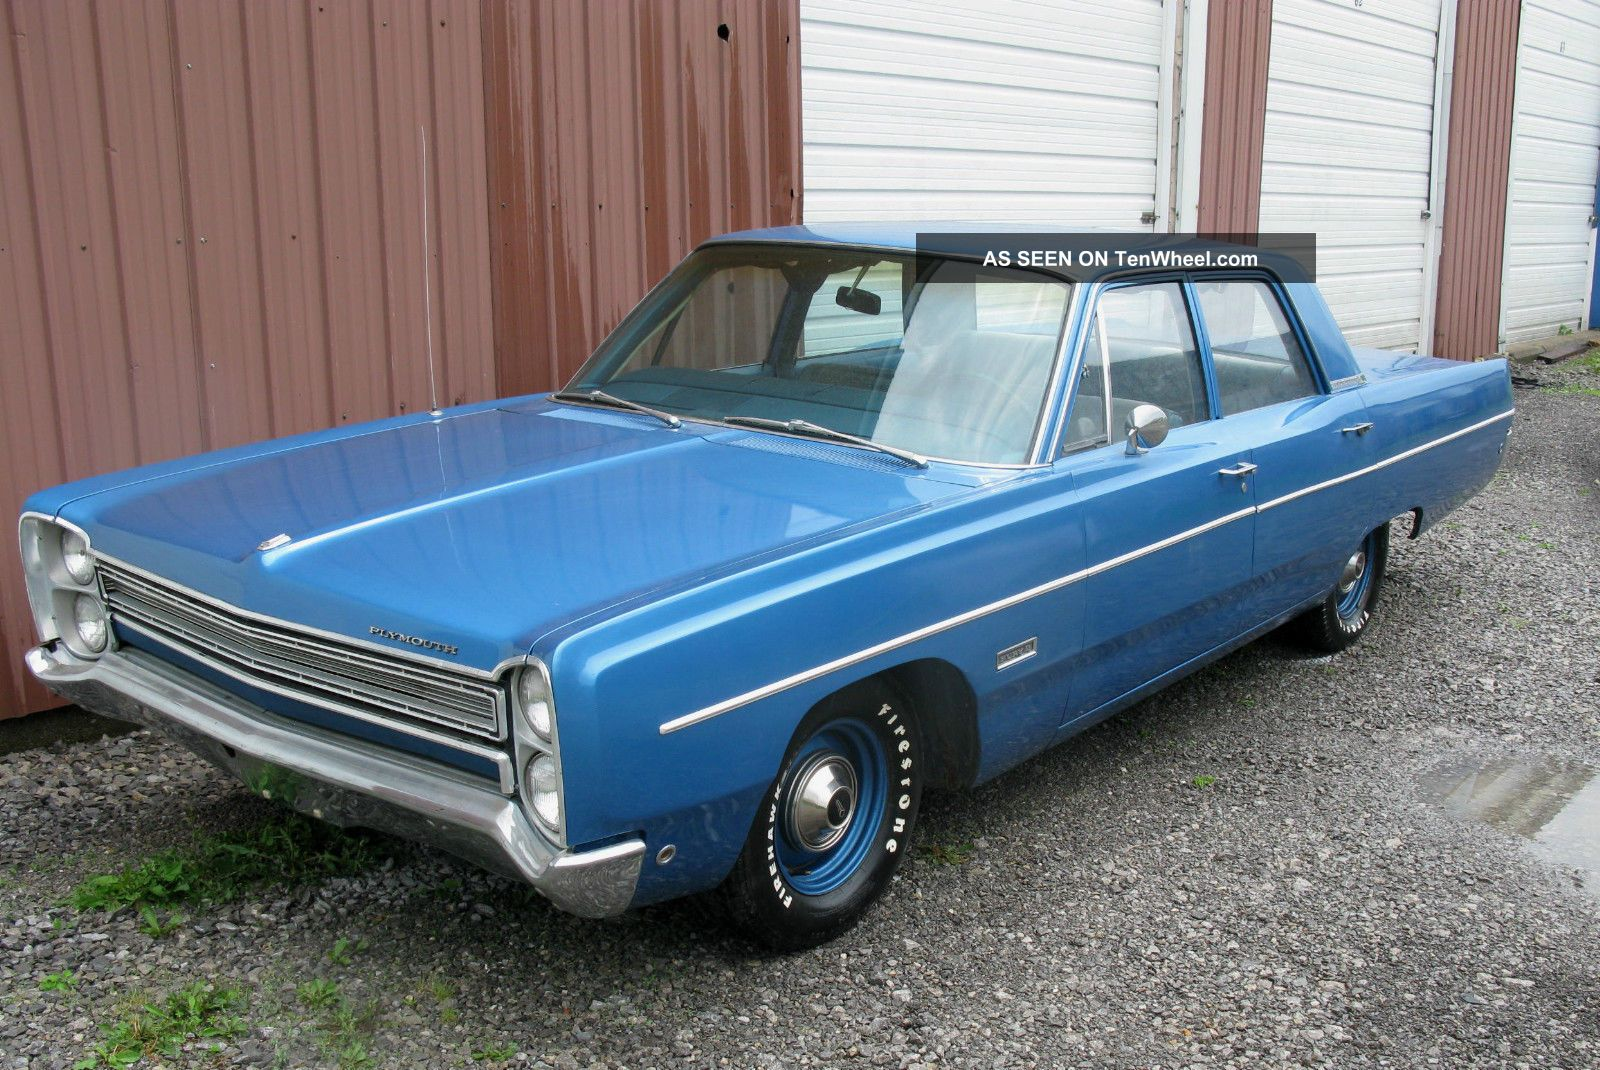 1968 Plymouth Fury Ii,  318 - 4v,  727,  Highly Fury photo